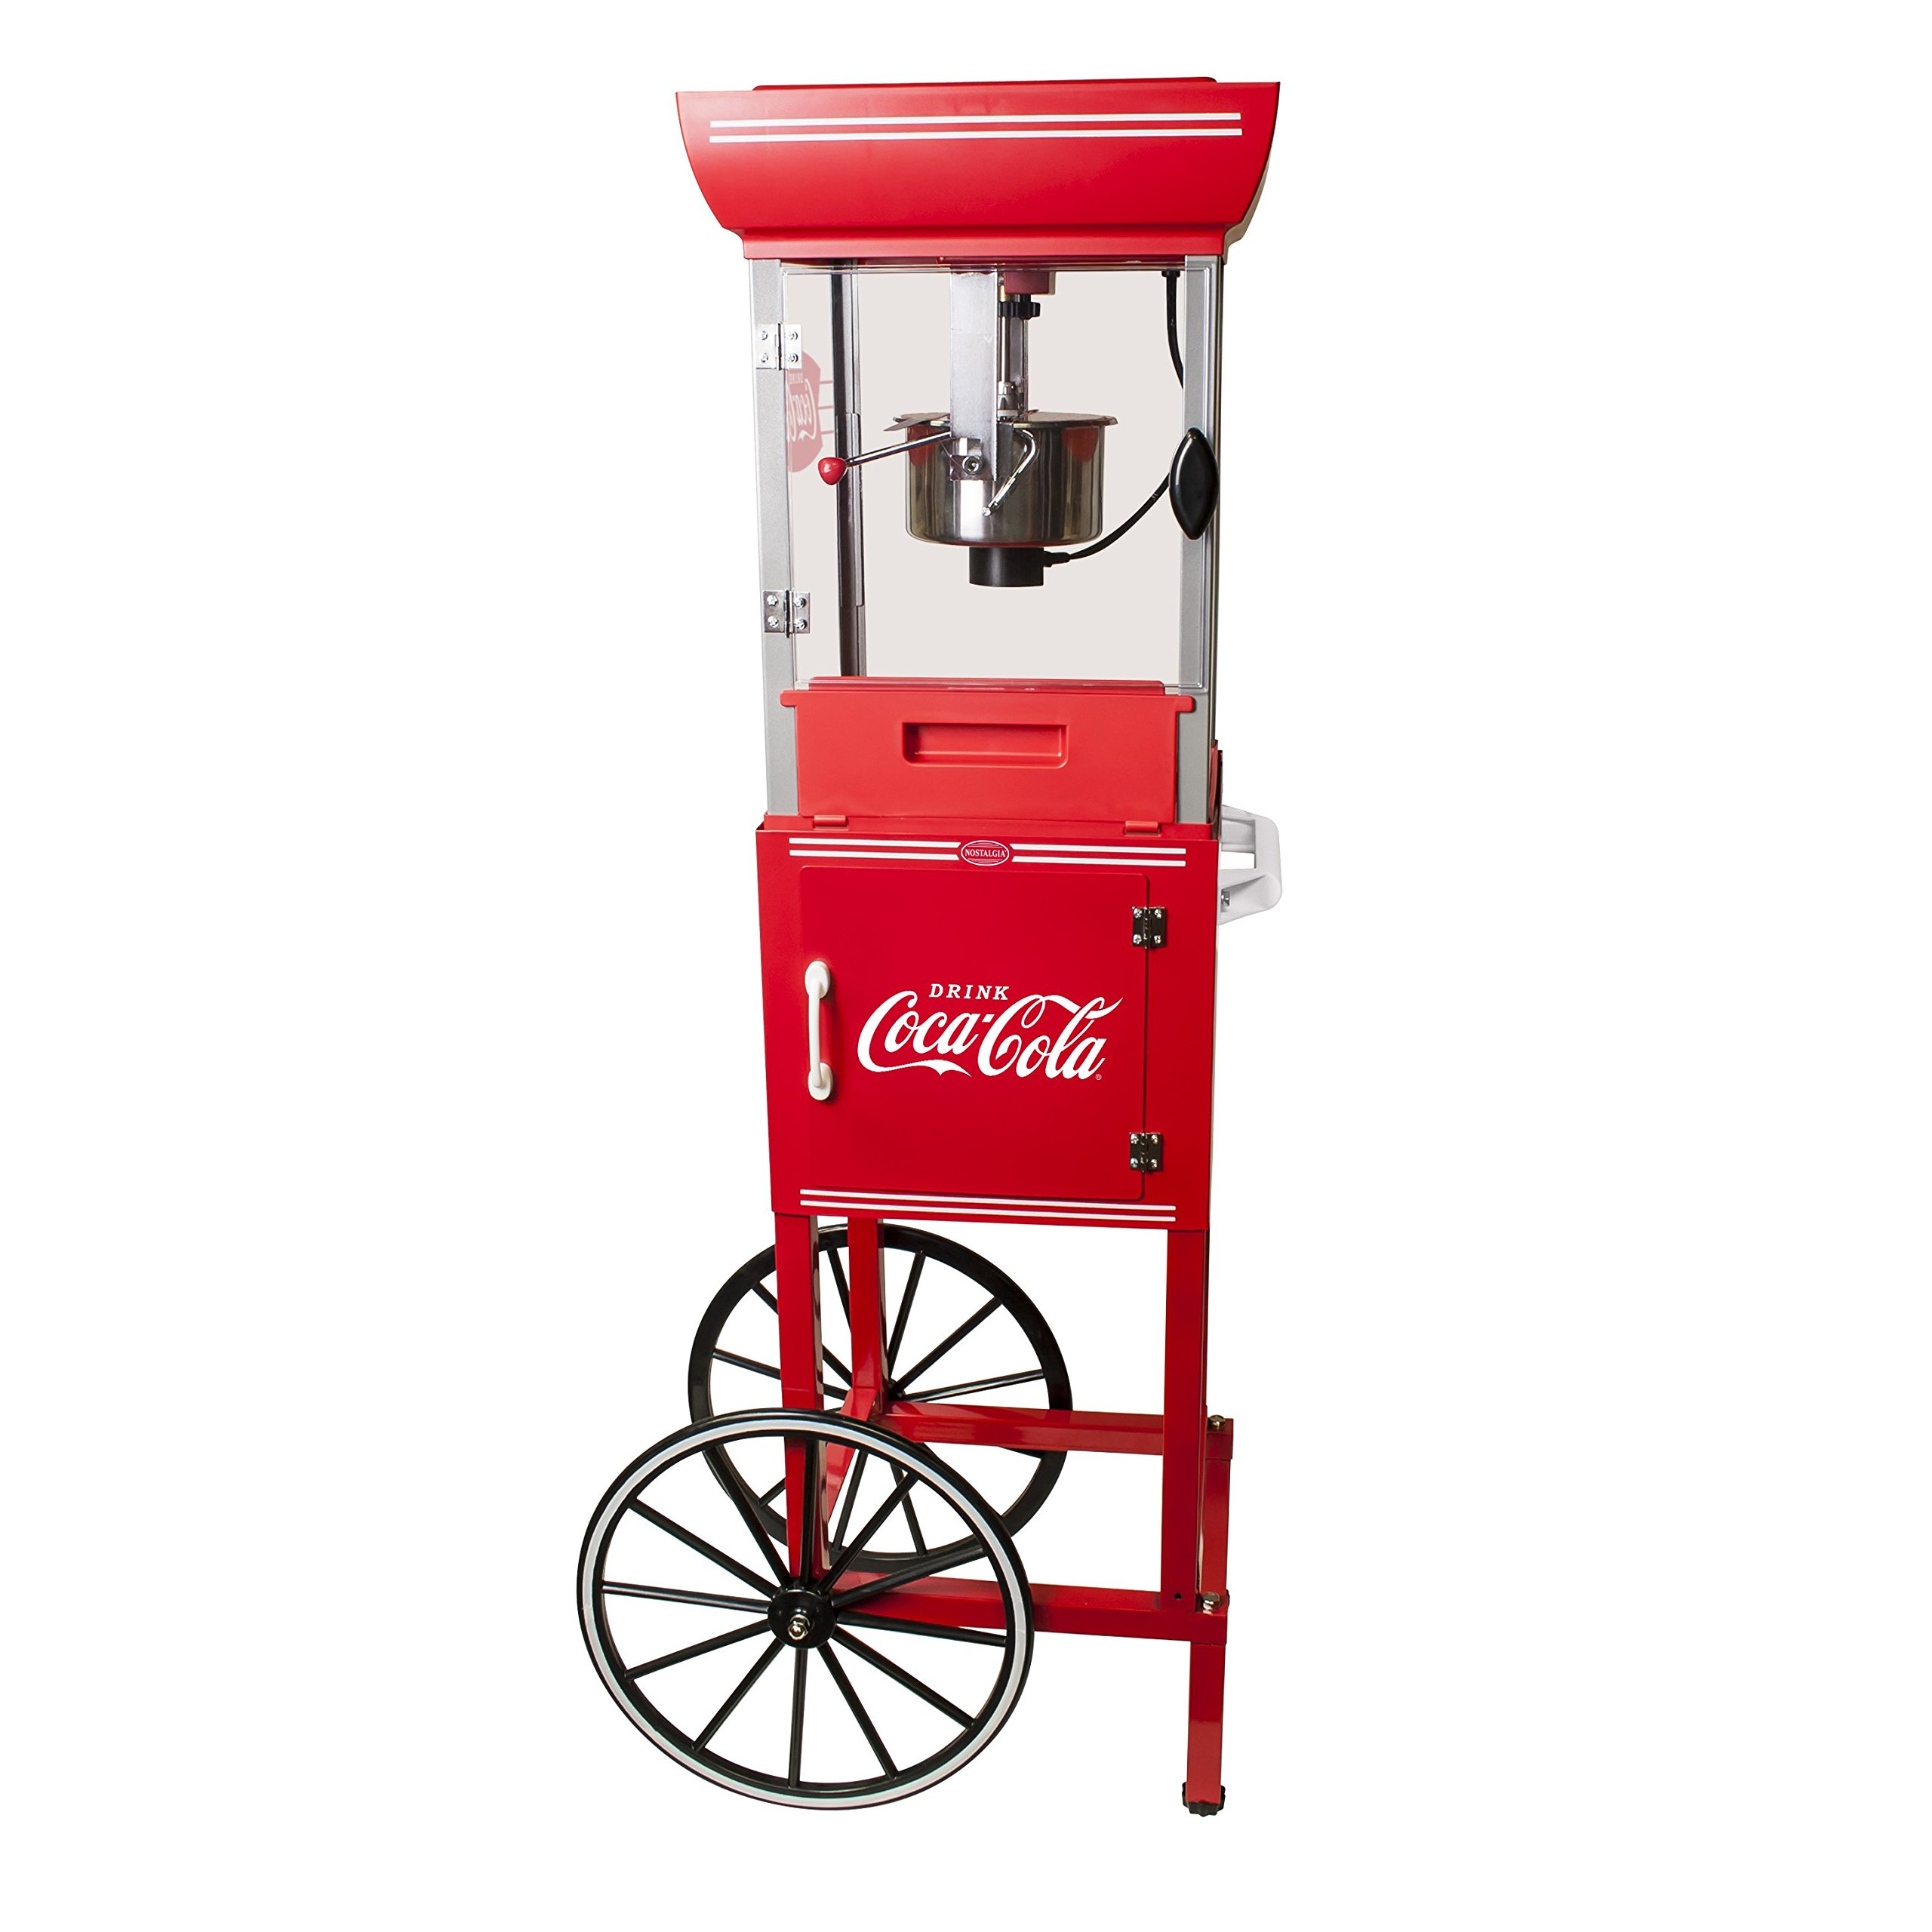 2.5 oz. Coca-Cola Series Old Fashioned Movie Time Popcorn Cart, Theater Style Machine Popper